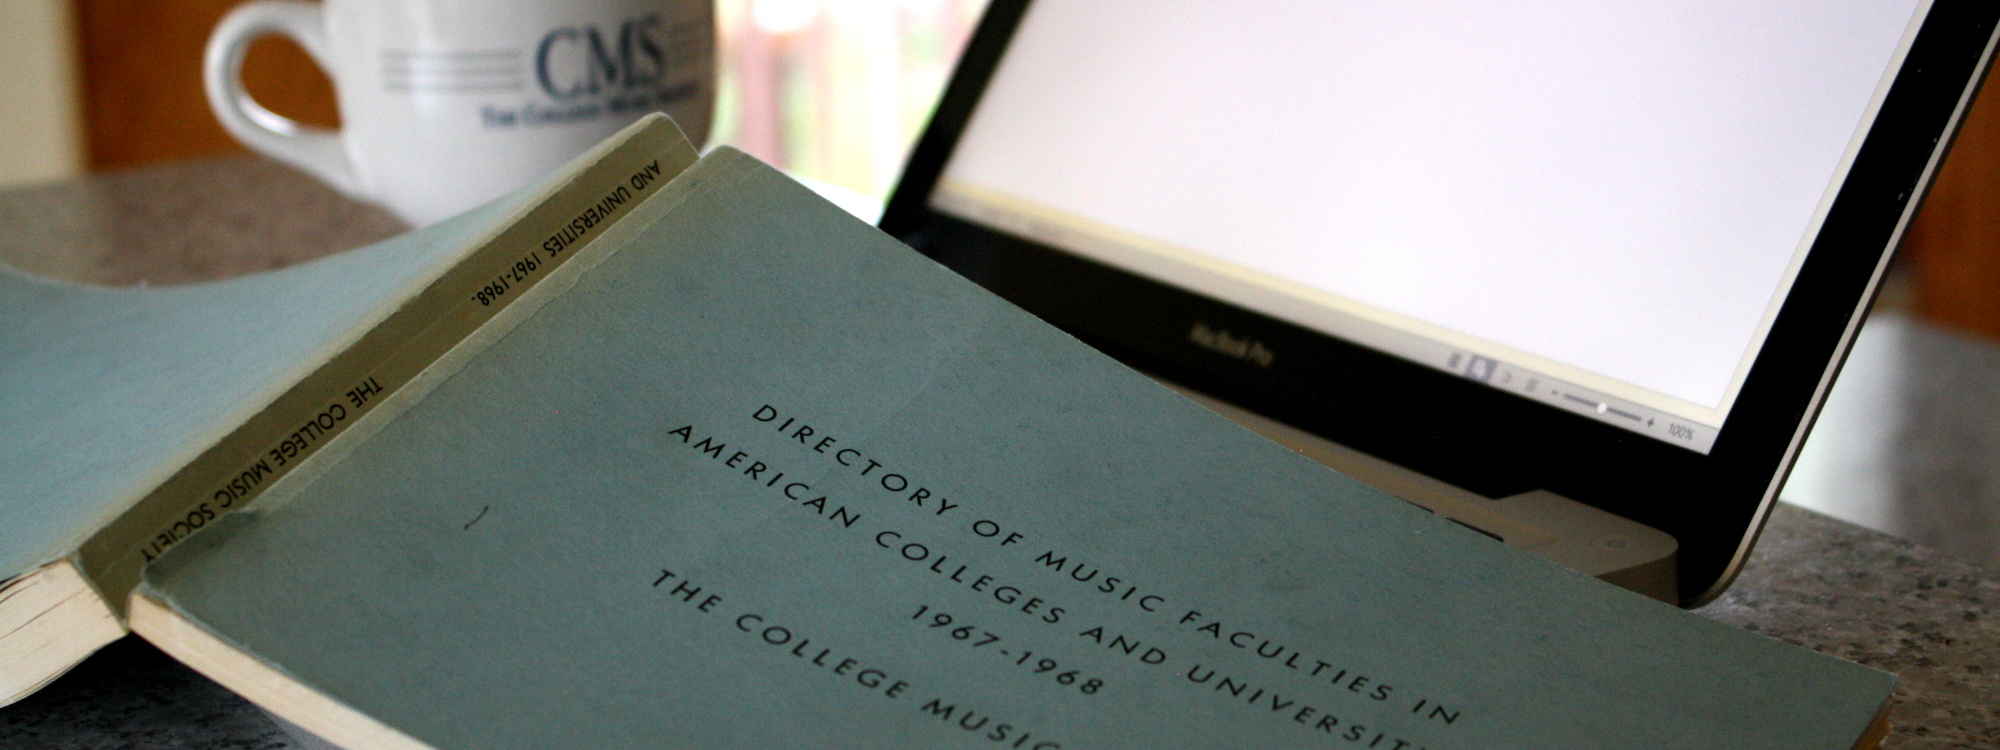 Directory of Music Faculties in Colleges<br> and Universities, U.S. and Canada